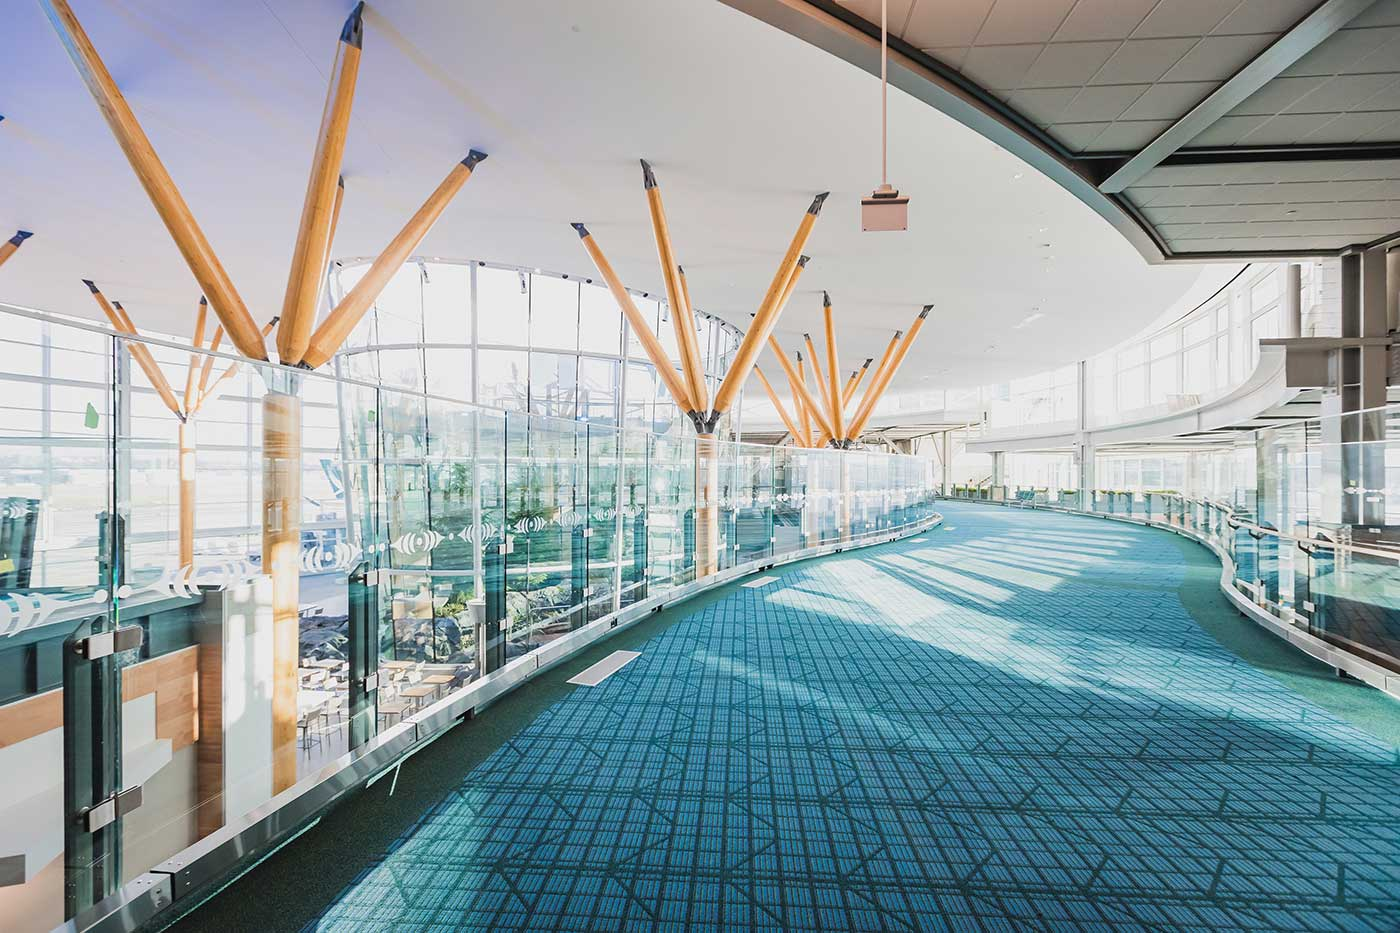 YVR Pier D Expansion completed seating area